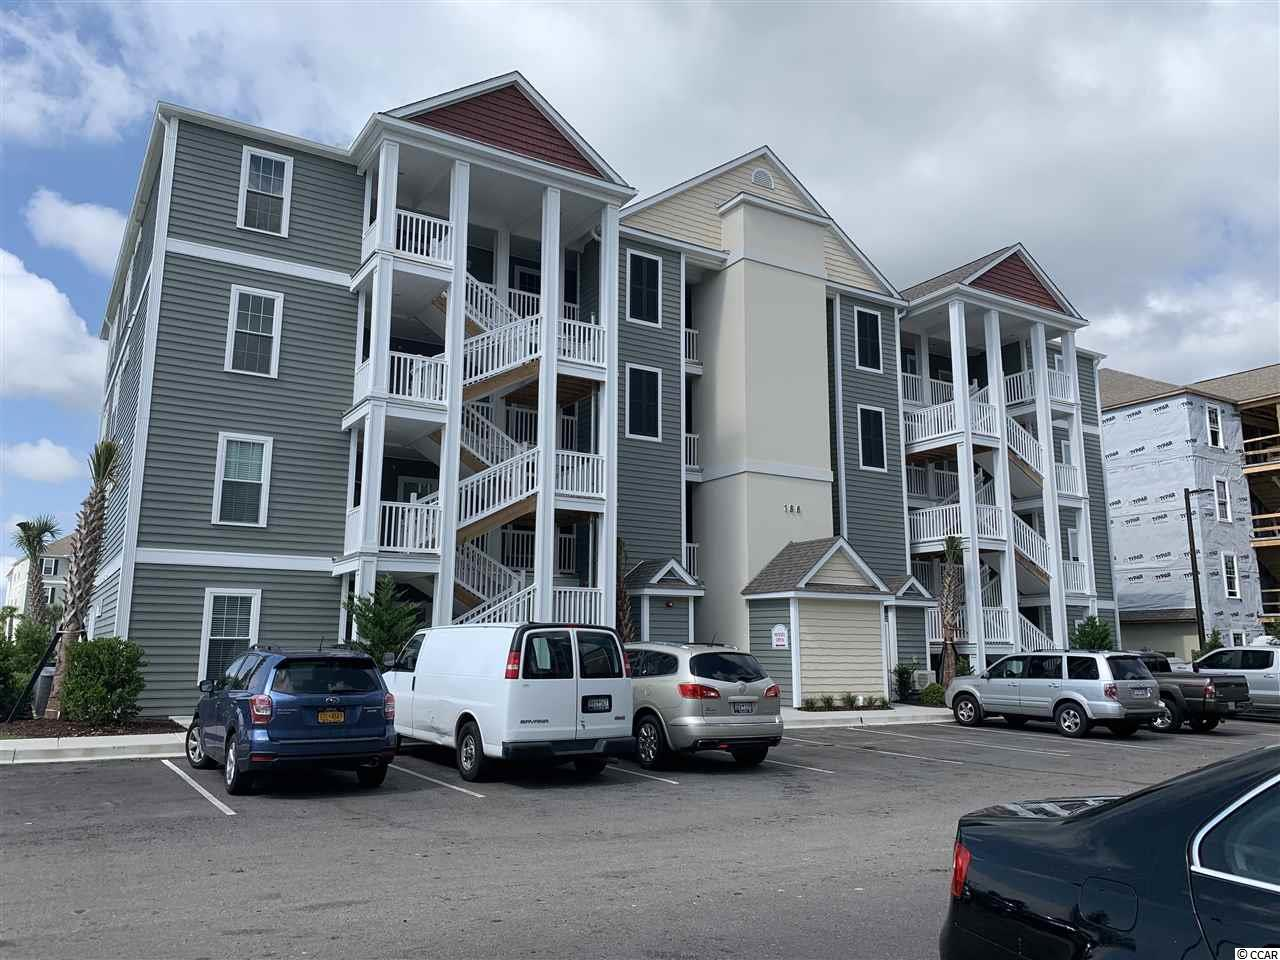 Located in one of the most successful condo developments in the Myrtle Beach area, this third floor unit is a 2 bedroom 2 bathroom beautiful condo in the very popular Queens Harbour! Building has an over sized ELEVATOR to all floors, outside storage, split bedroom floor plans with entry to the Master Suite from the Family Room, 9' smooth ceilings and a screen porch. The location is superb with shopping, dining and recreation steps away. The amenity package includes a resort style swimming pool with club house and conveniently located picnic areas with barbecues.